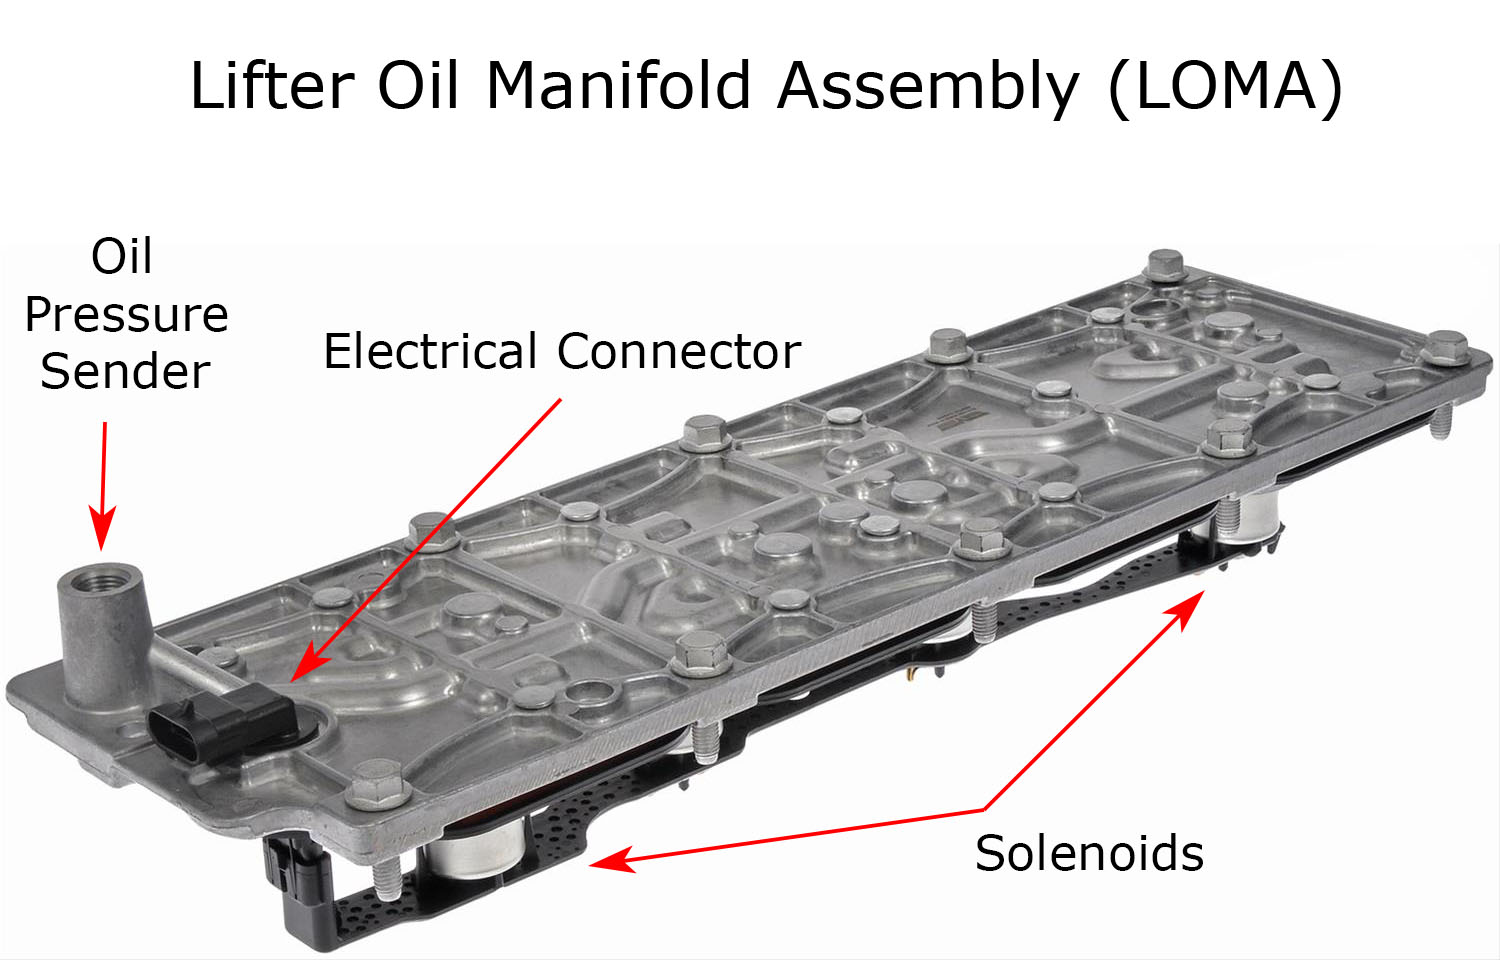 hight resolution of lifter oil manifold assembly loma